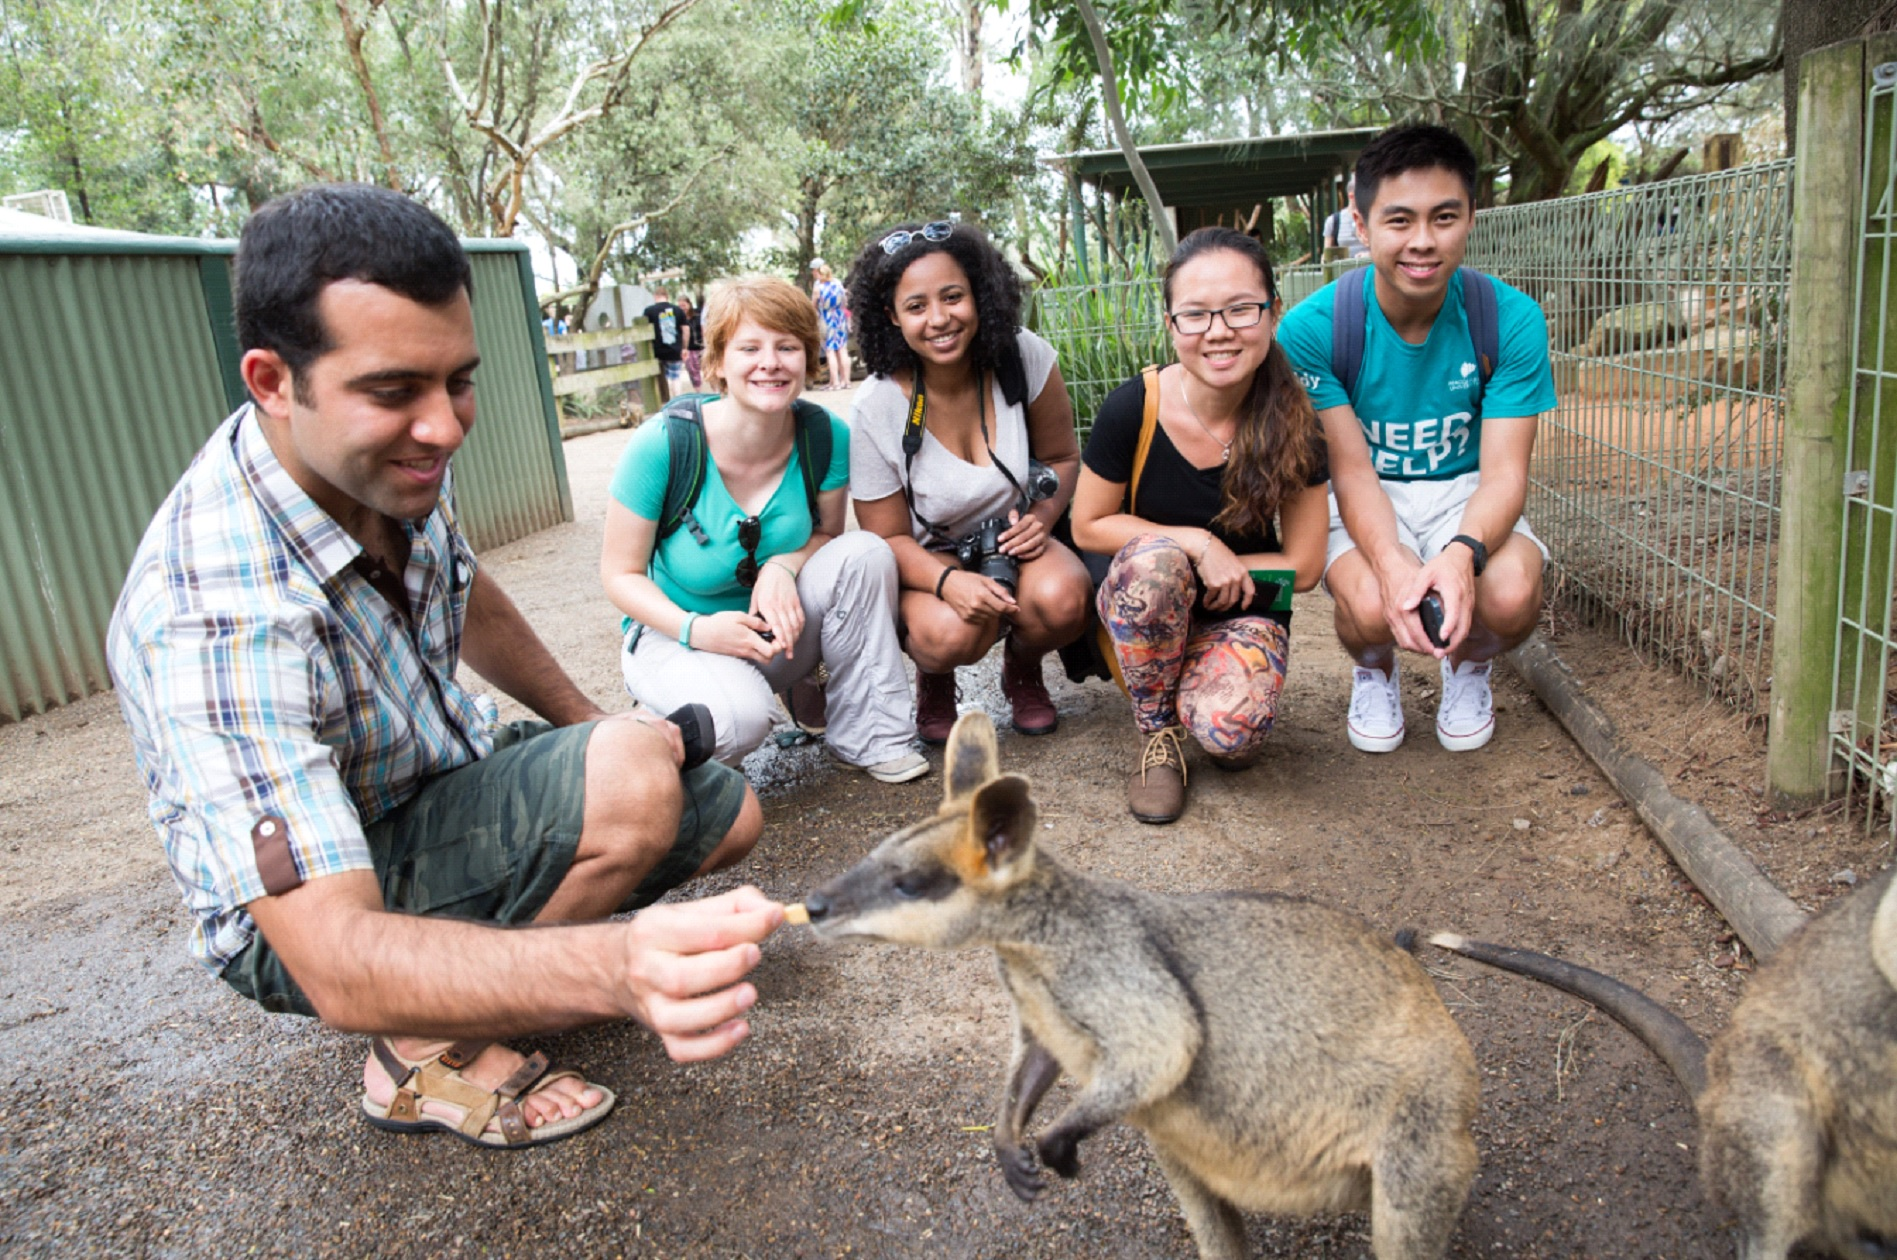 International students are welcome in Sydney, one of the most multicultural cities in the world.